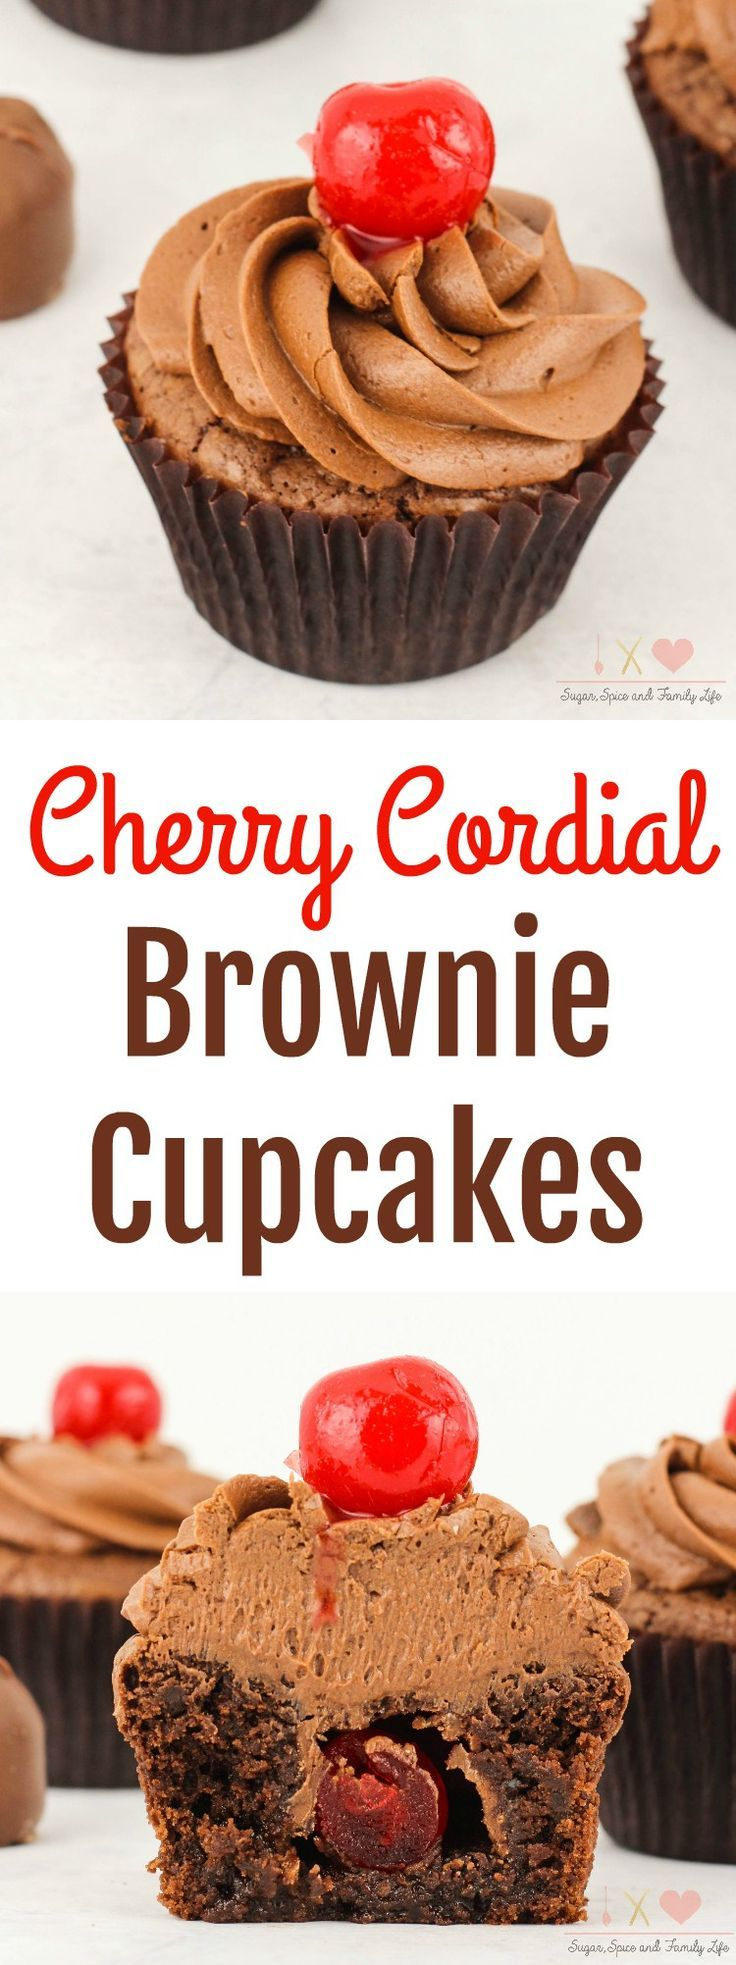 Cherry Cordial Brownie Cupcakes are a delicious chocolate cherry dessert. Each chocolate brownie cupcake is stuffed with a cherry cordial. Then covered with chocolate frosting and a maraschino cherry on top. Anyone who enjoys chocolate covered cherries will love this cherry brownie dessert. -  Cherry Cordial Brownie Cupcakes Recipe from Sugar, Spice and Family Life